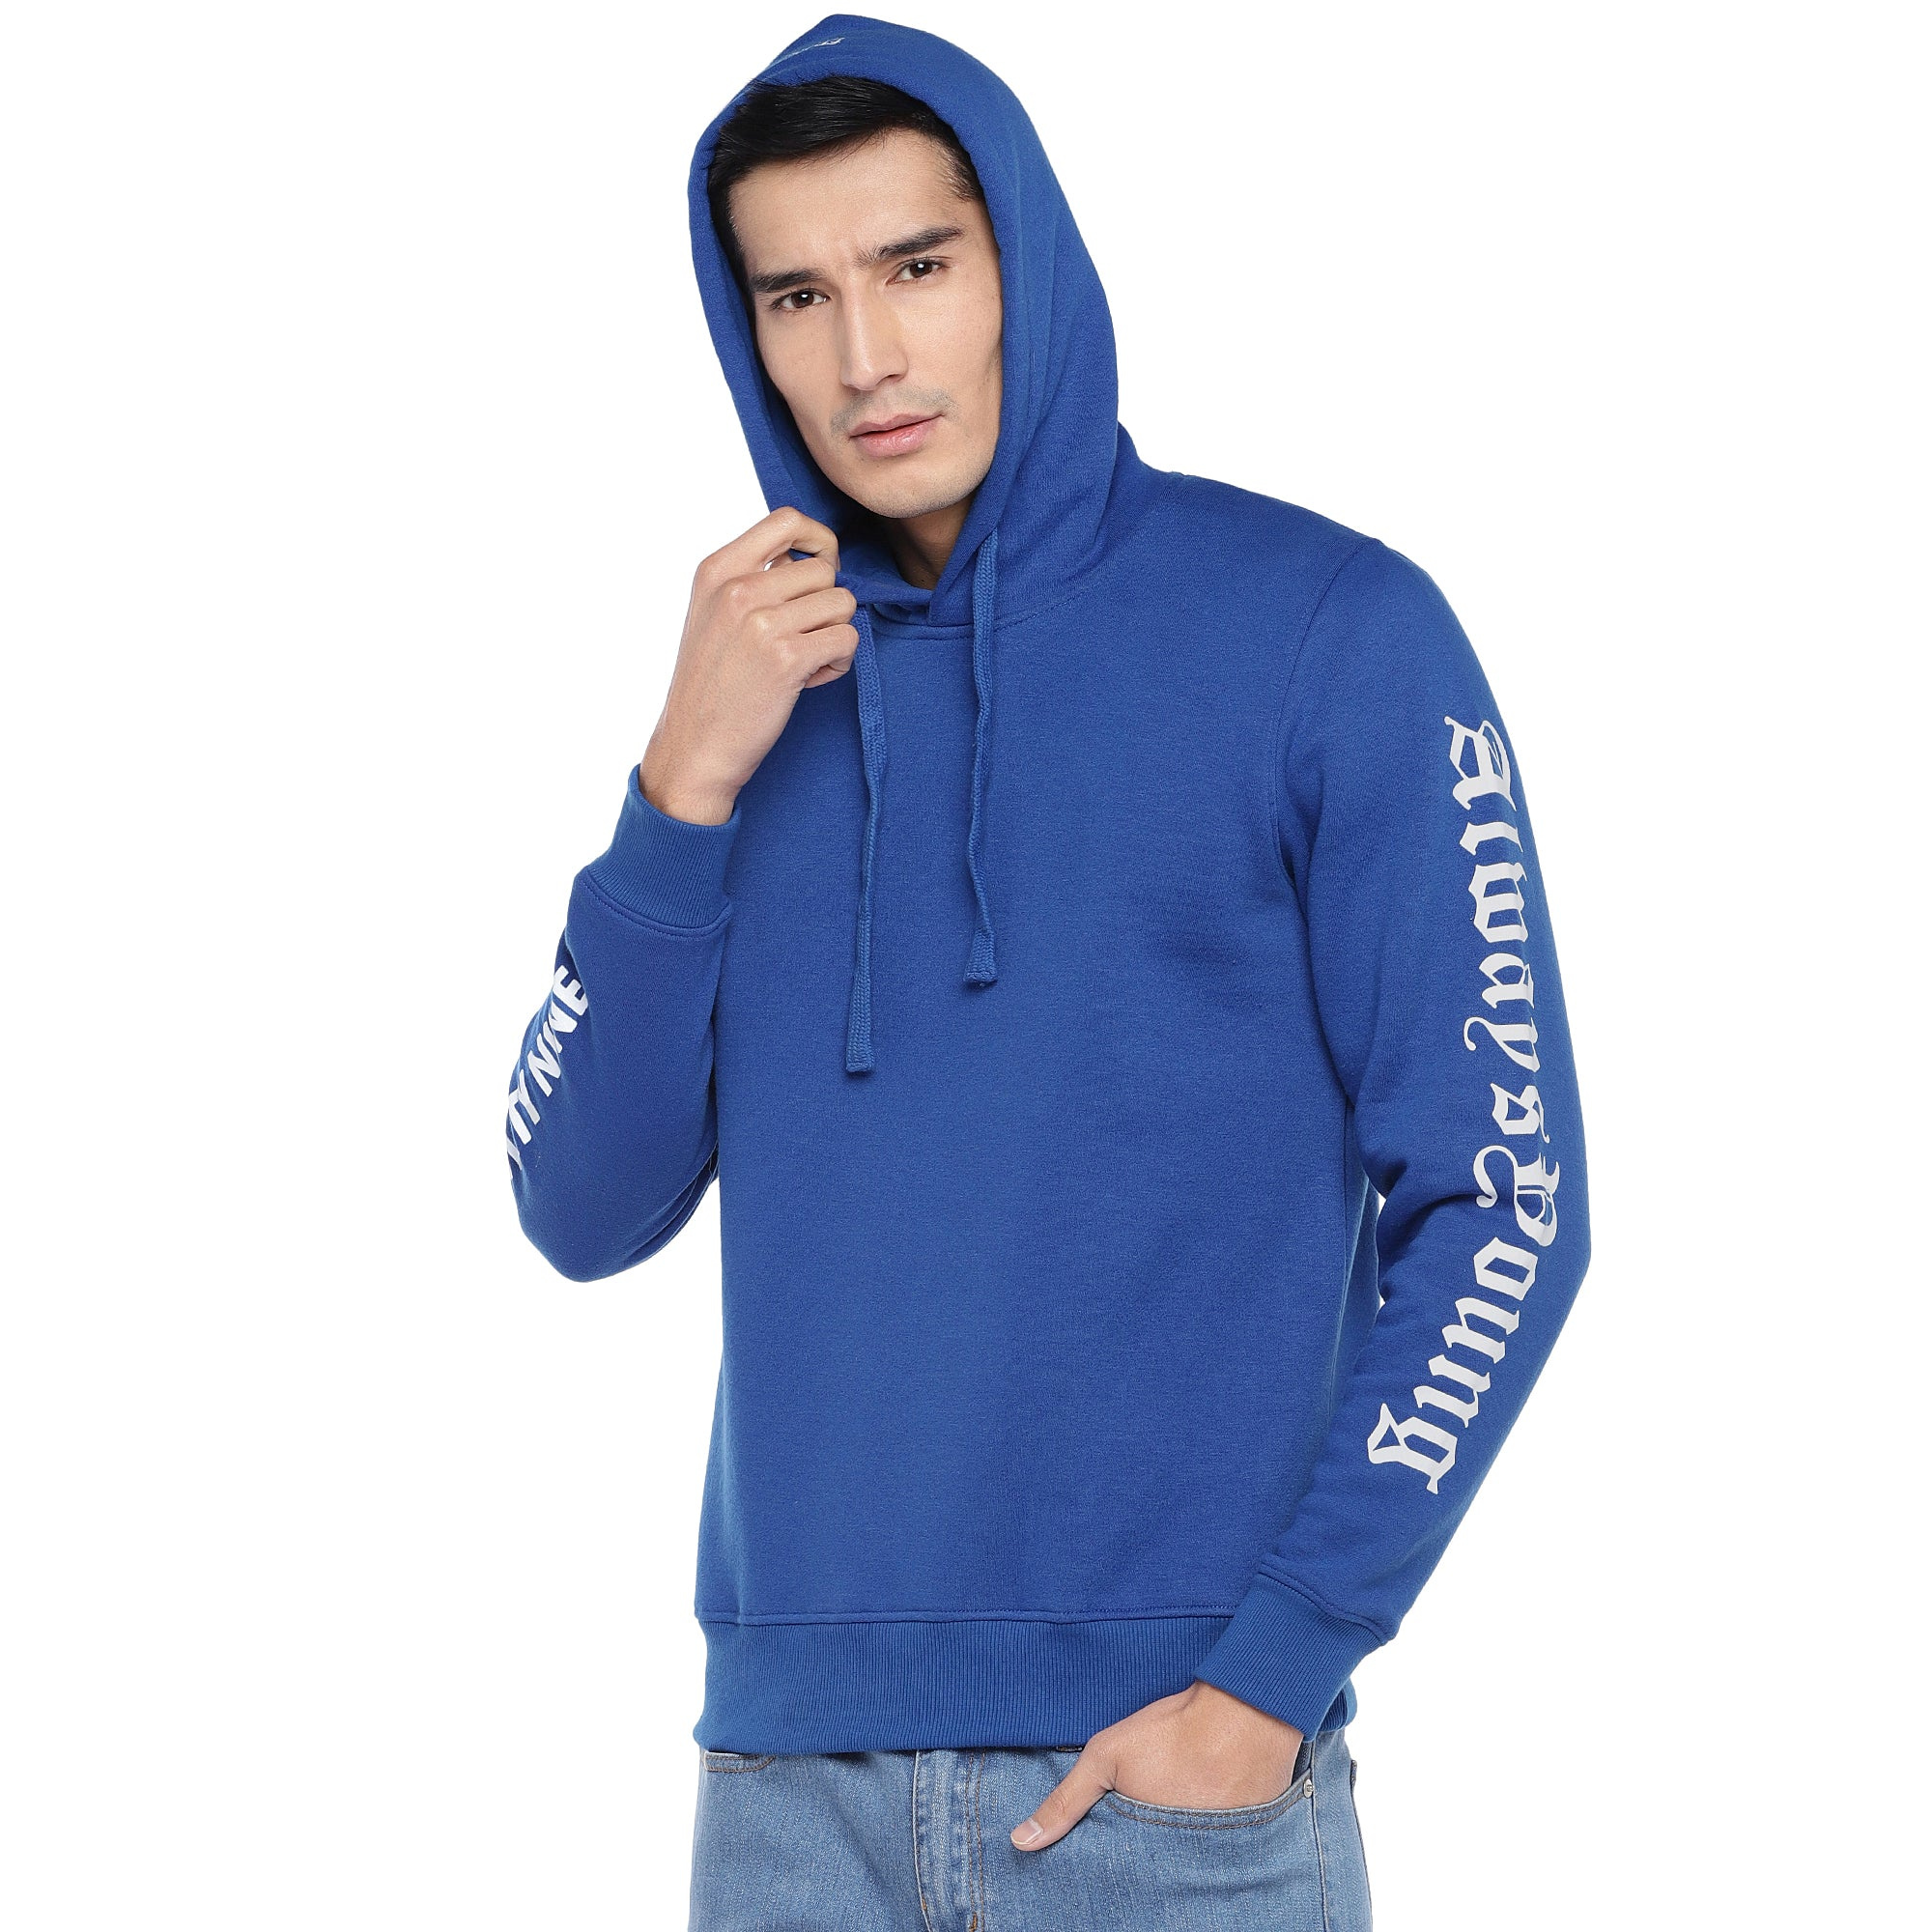 Blue Solid Sweatshirt-2